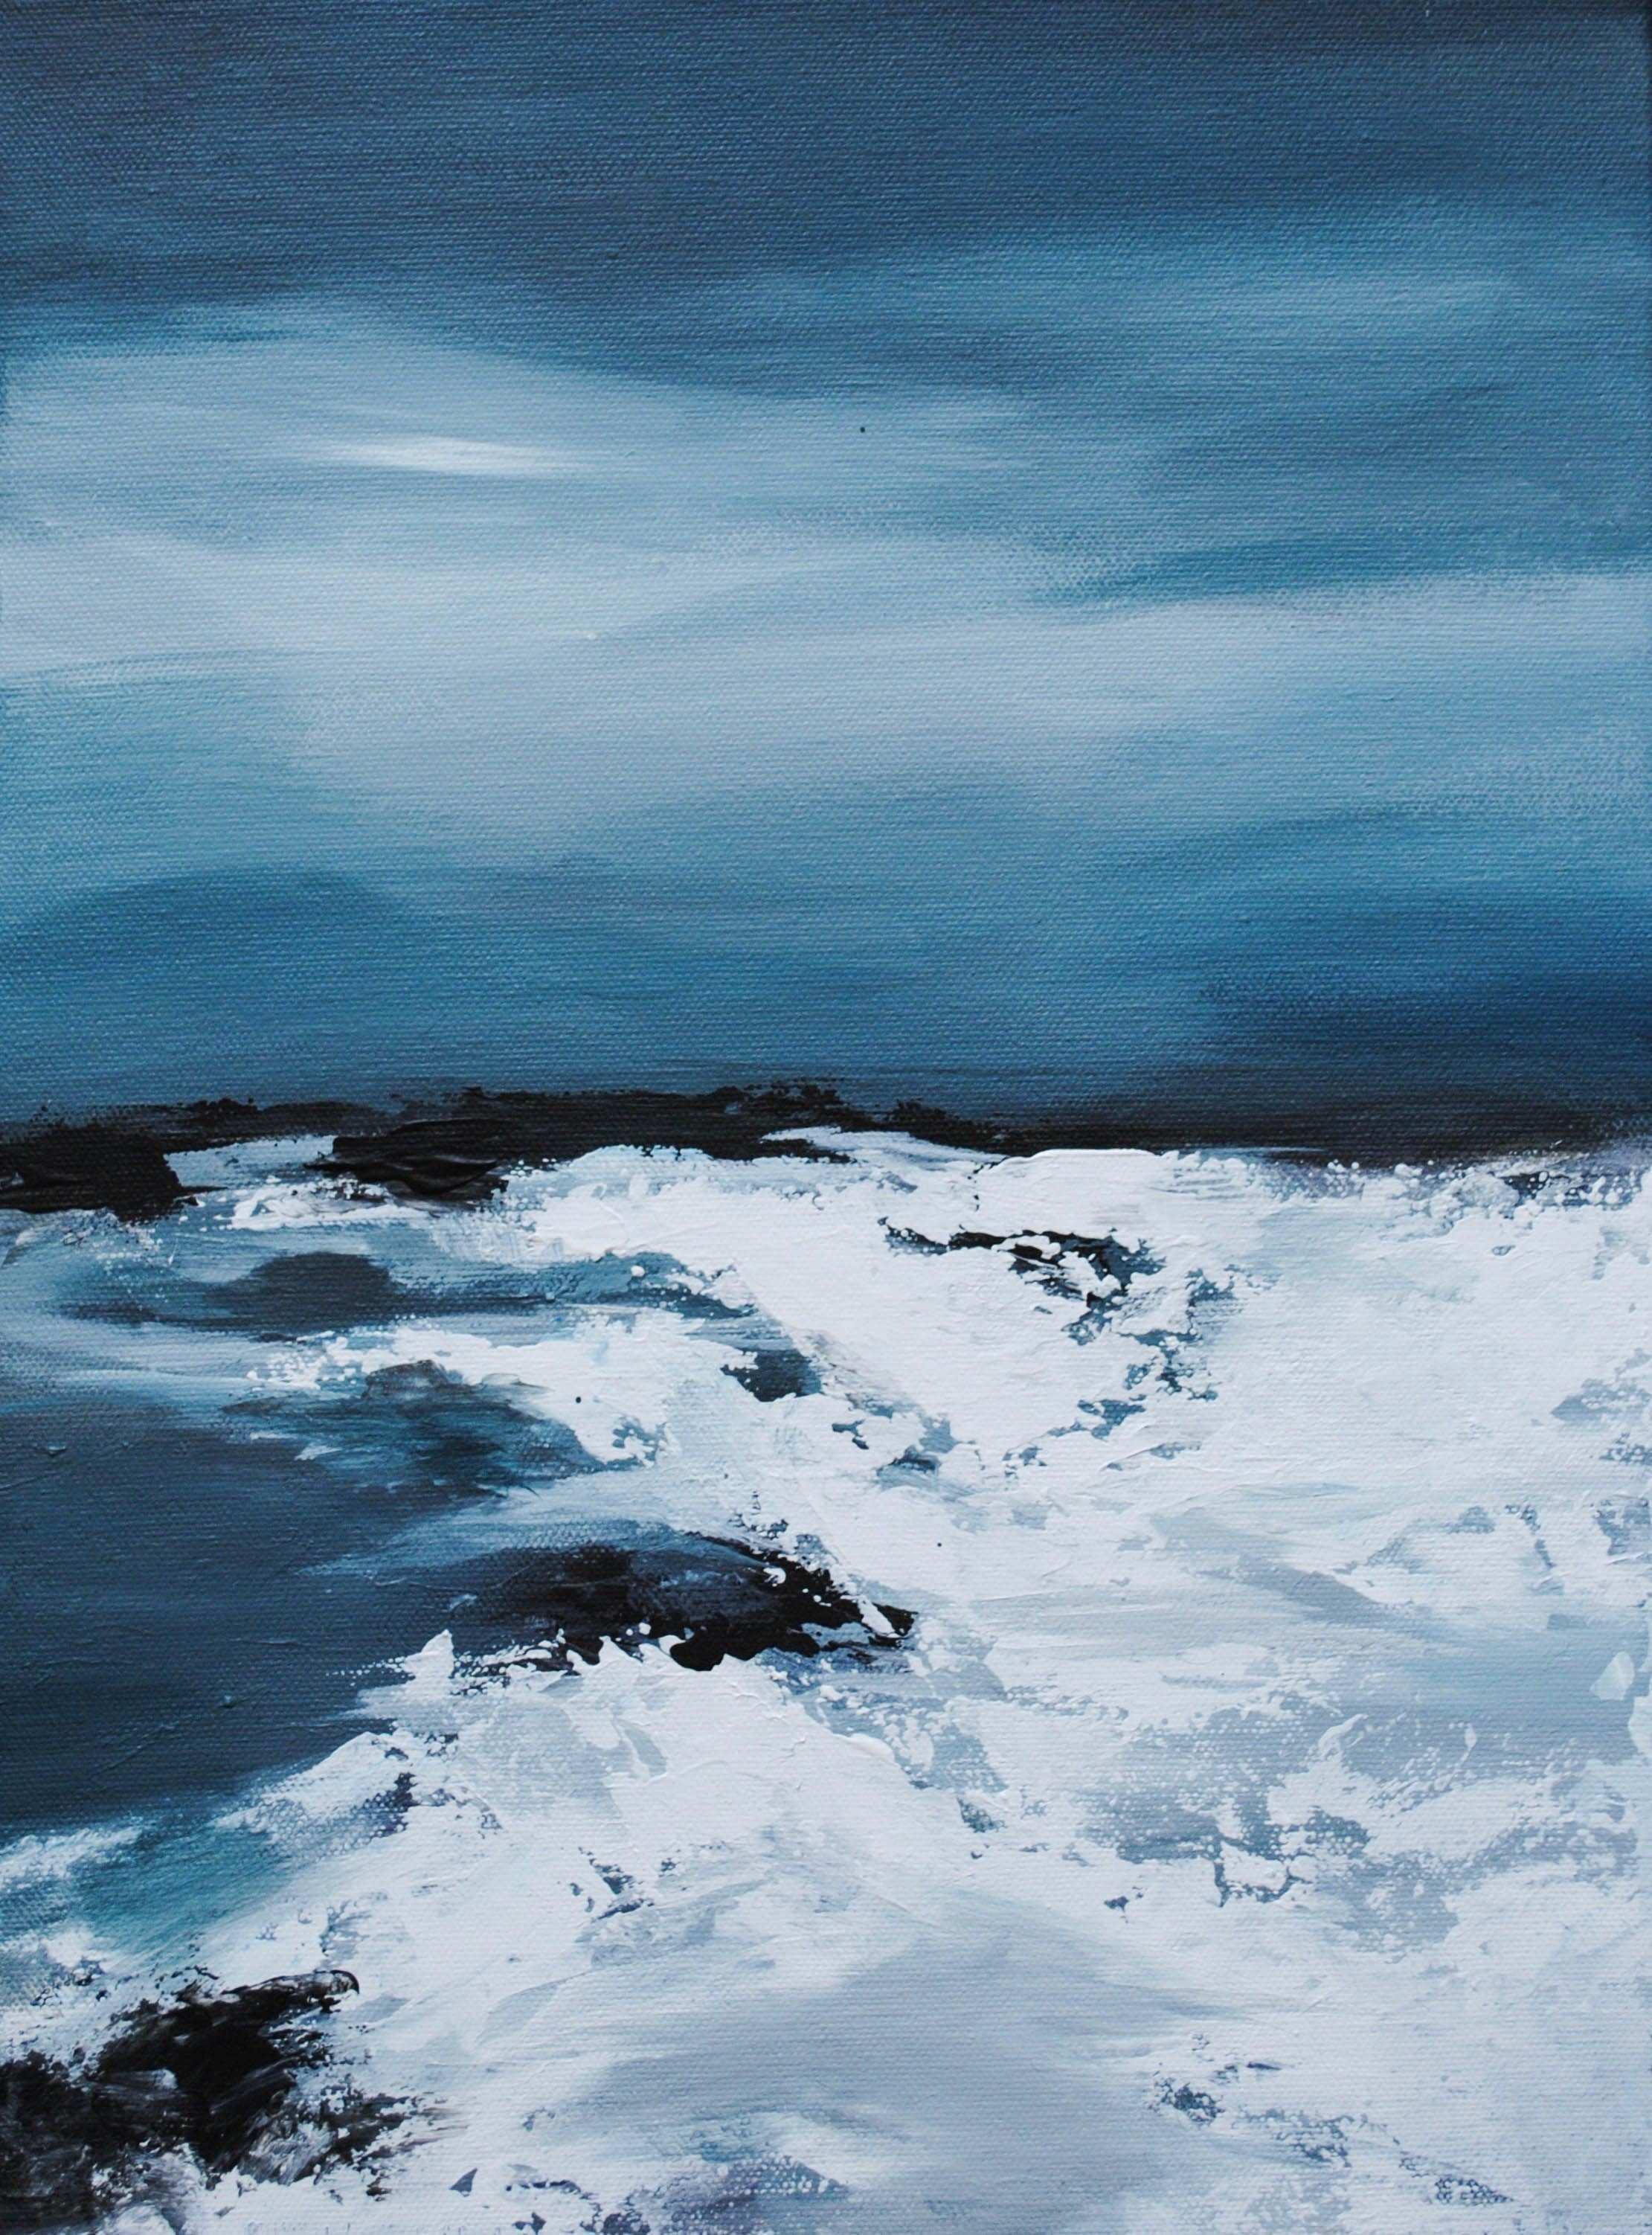 Stormy seascape abstract ocean waves painting